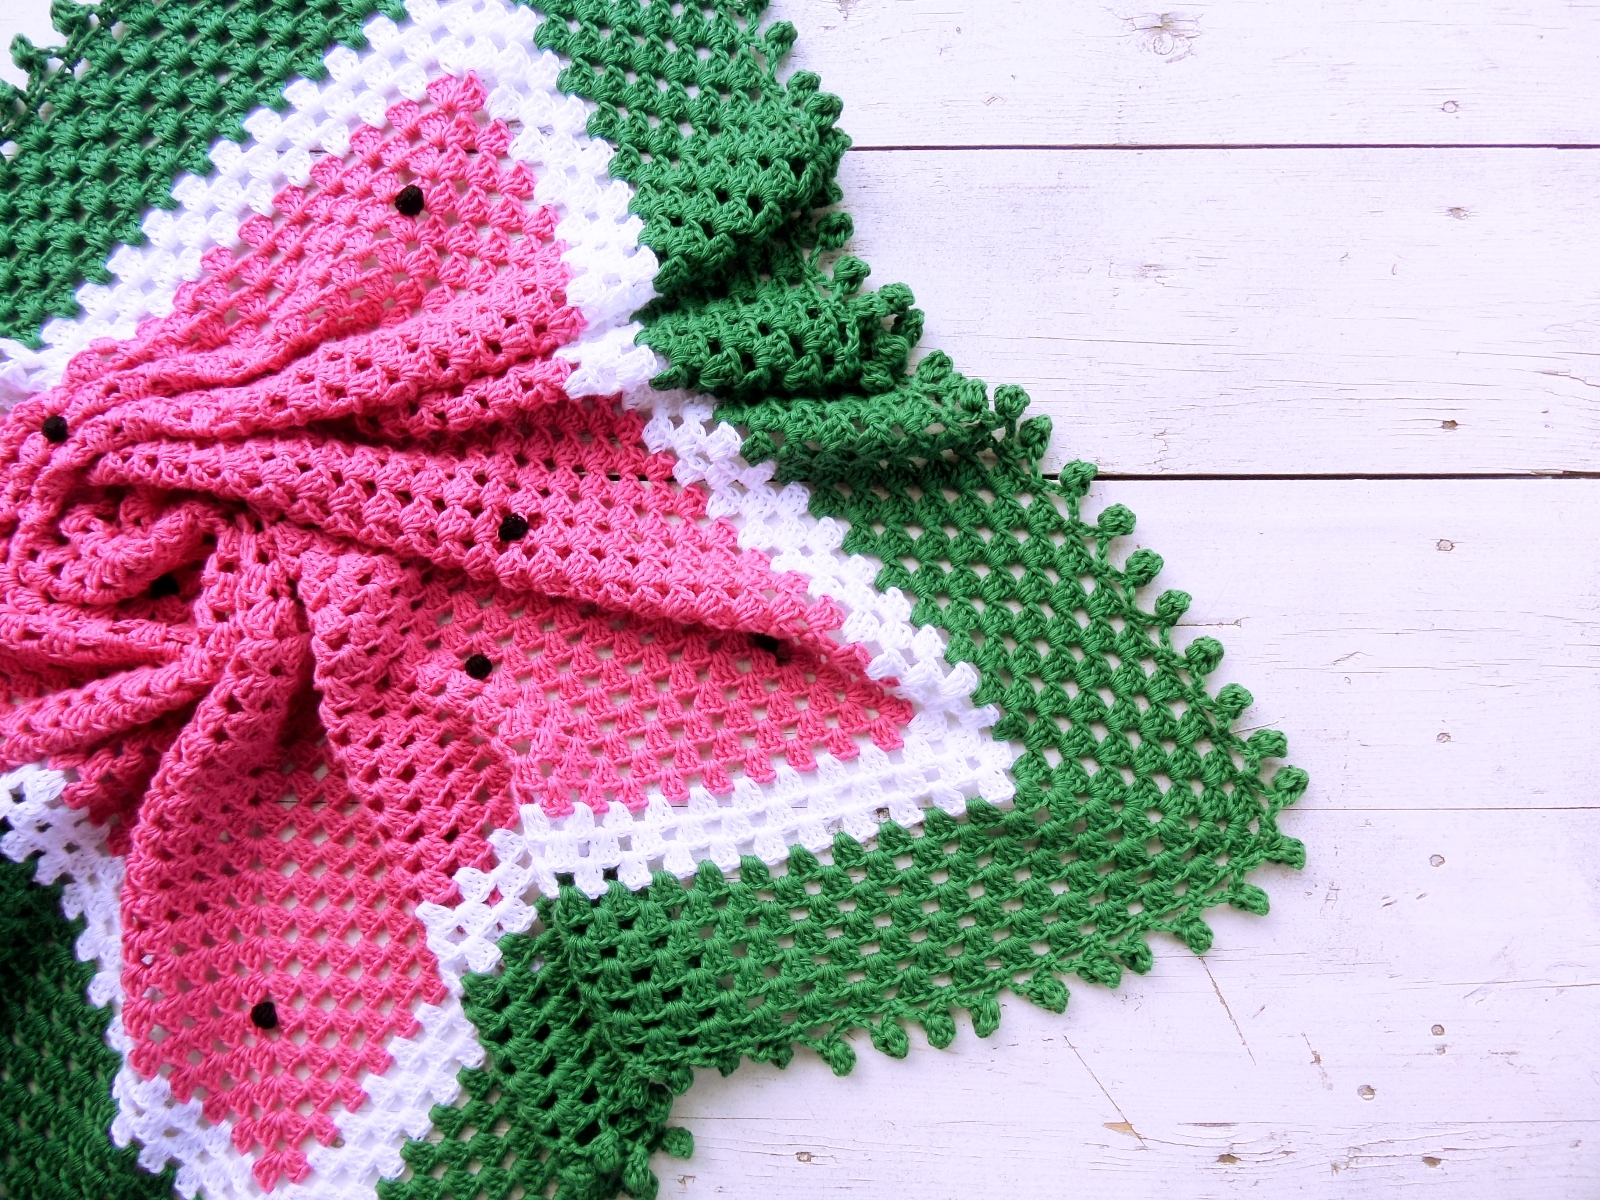 Knitted baby blanket watermelon - PLED 173